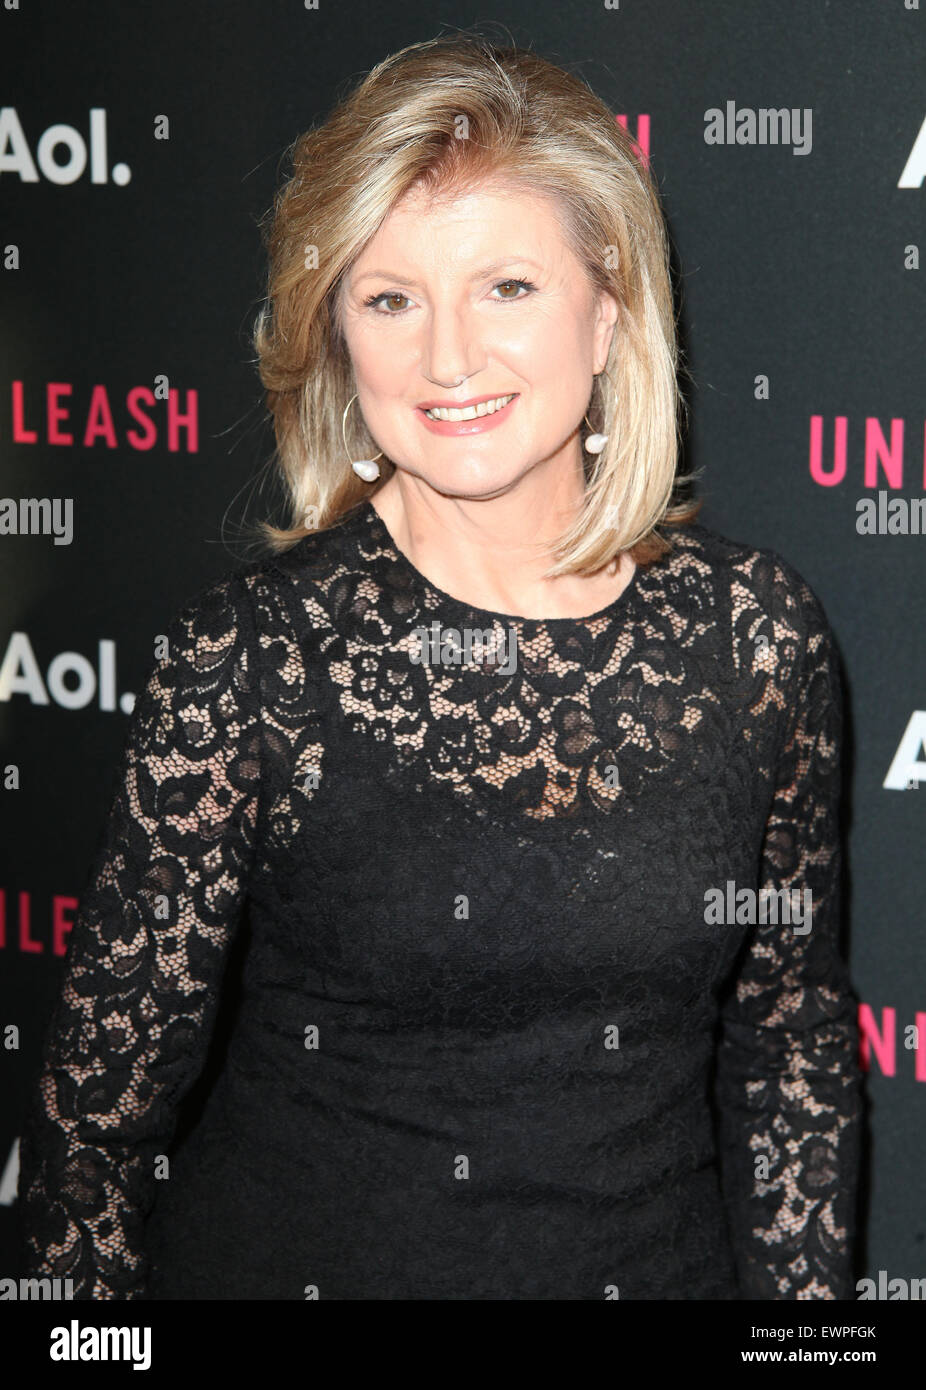 AOL 2015 NewFront presents AOL Unleash at the 4 World Trade Center - Arrivals  Featuring: Arianna Huffington Where: - Stock Image